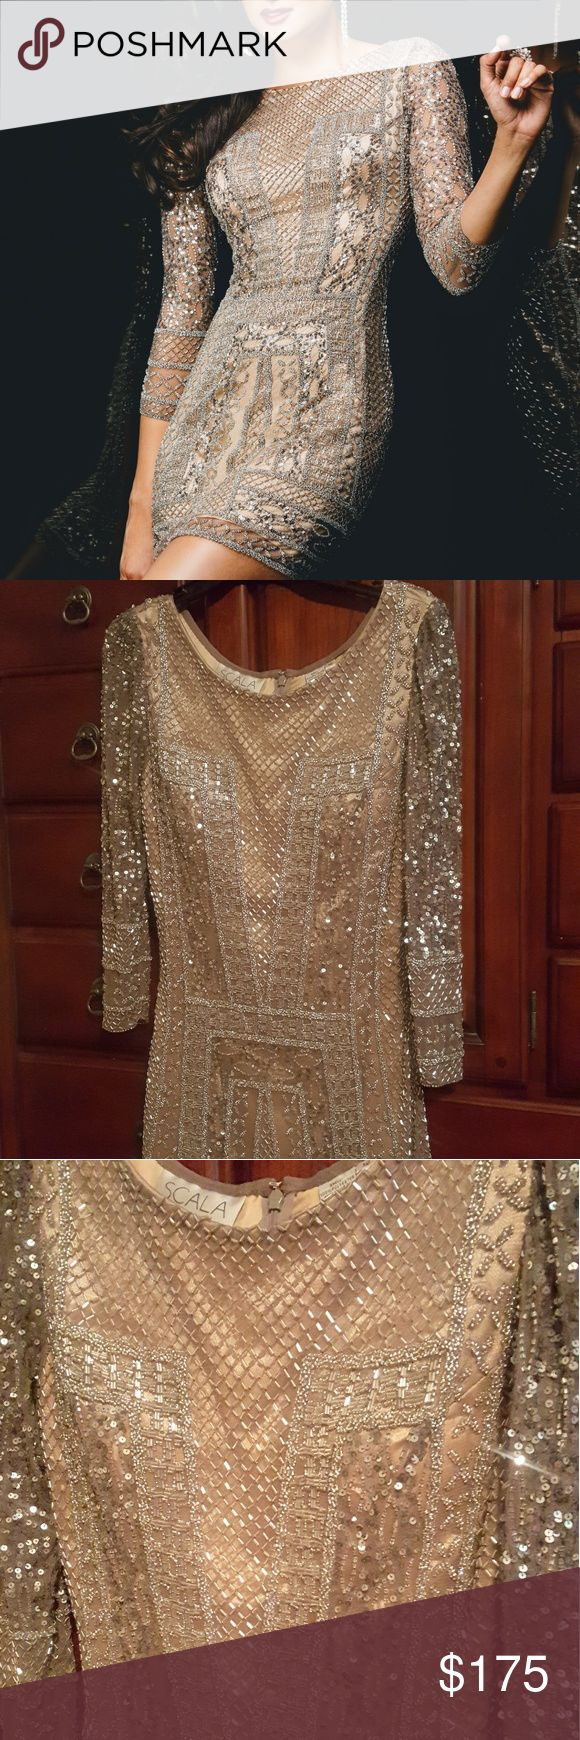 🌻SALE🌻SCALA BEADED DRESS SCALA STYLE # 48377 BASIC BEAUTIFUL CLASSY FIT! 3/4 LENGTH SLEEVES GORGEOUS!THE PERFECT DRESS! SIZE 12 (RUNS SMALL MORE LIKE 8/10) SEE SIZING CHART WORN ONCE-ANY MISSING/LOOSE BEADING REFLECTED IN PRICE COLOR PLATINUM NUDE UNDERLINING 100% POLYESTER EMBELLISHED THROUGHOUT 100% TULLE COMES W/GARMENT BAG. INVISIBLE FULL ZIPPER HOOK CLOSURE ON BACK MINI LENGTH(OR DEPENDING HOW TALL/SHORT YOU ARE) EXPENSIVE QUALITY,GLAMOROUS,SHINY *ASK QUESTIONS BEFORE PURCHASE, NO…